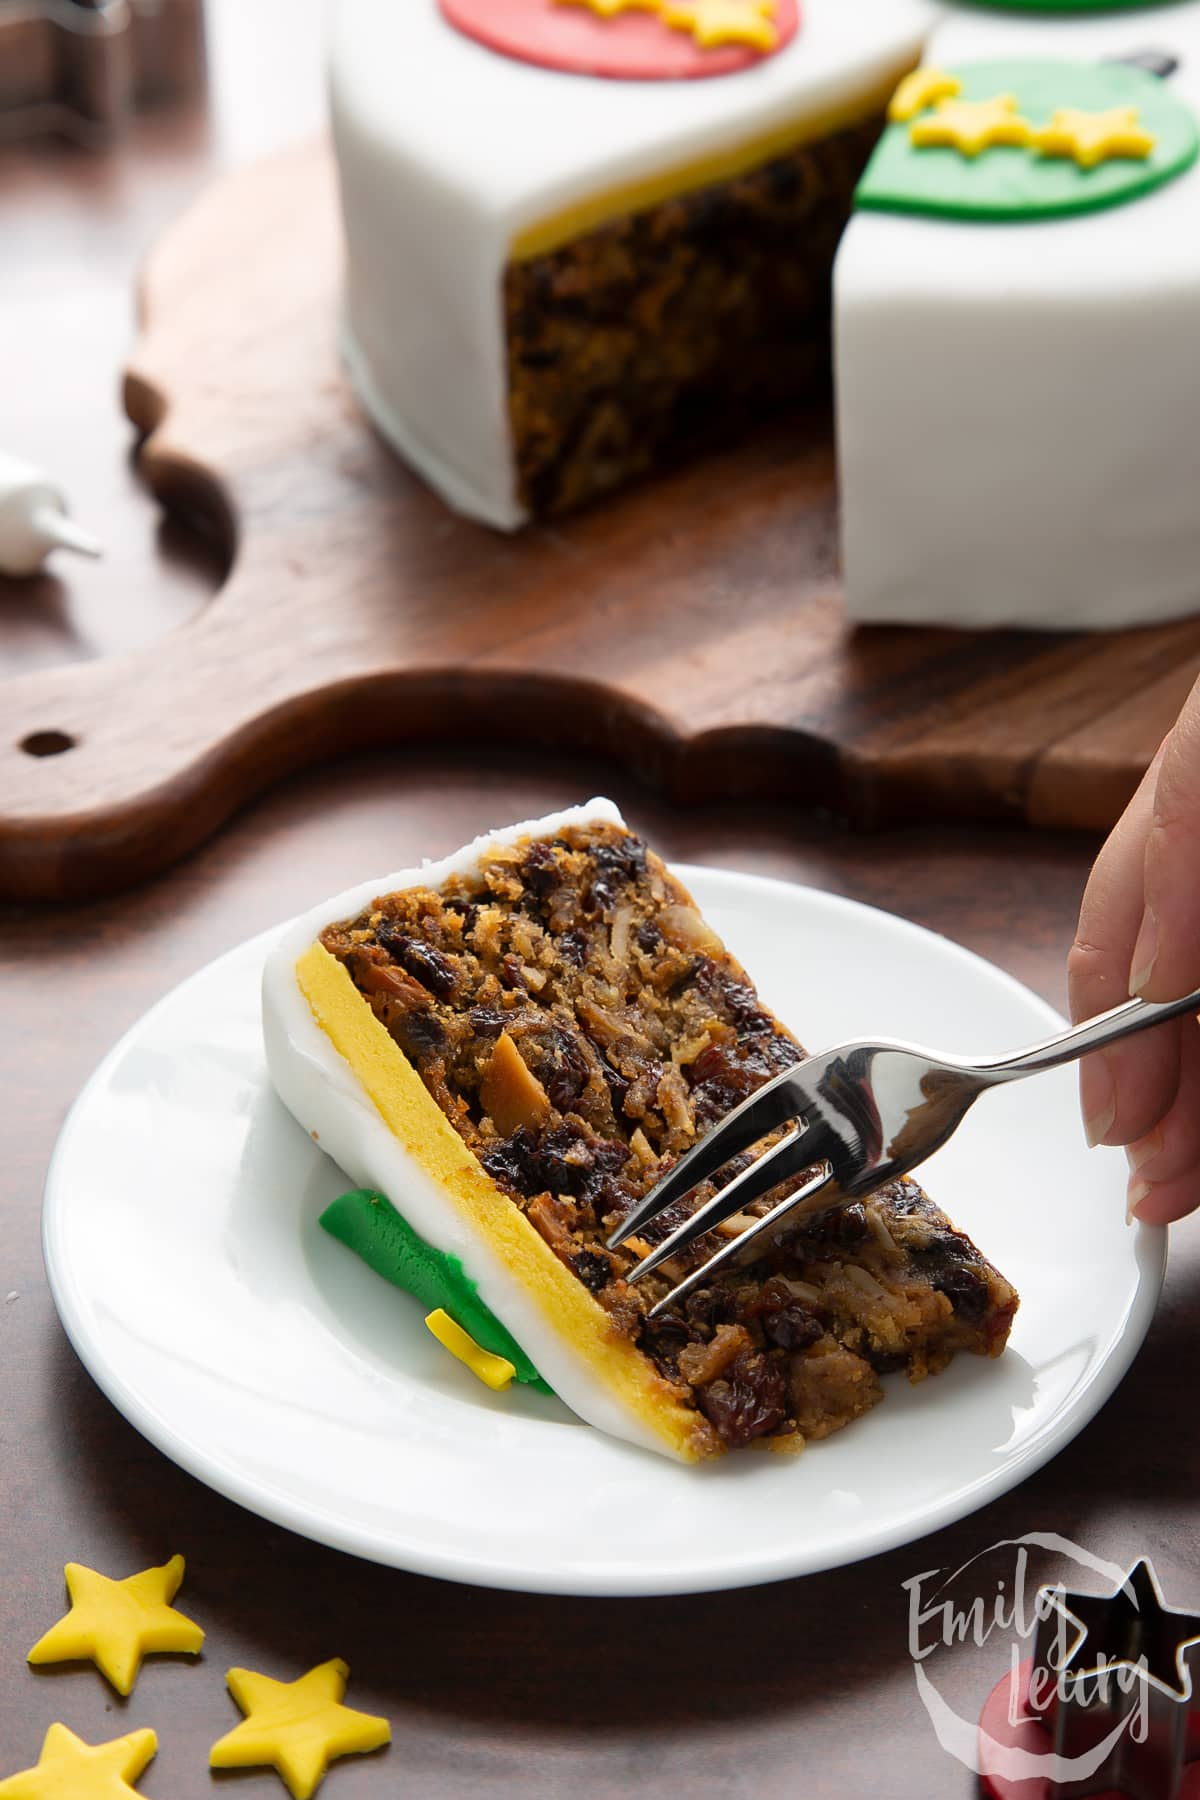 Slice of vegan Christmas cake on a white plate. A hand holds a fork.